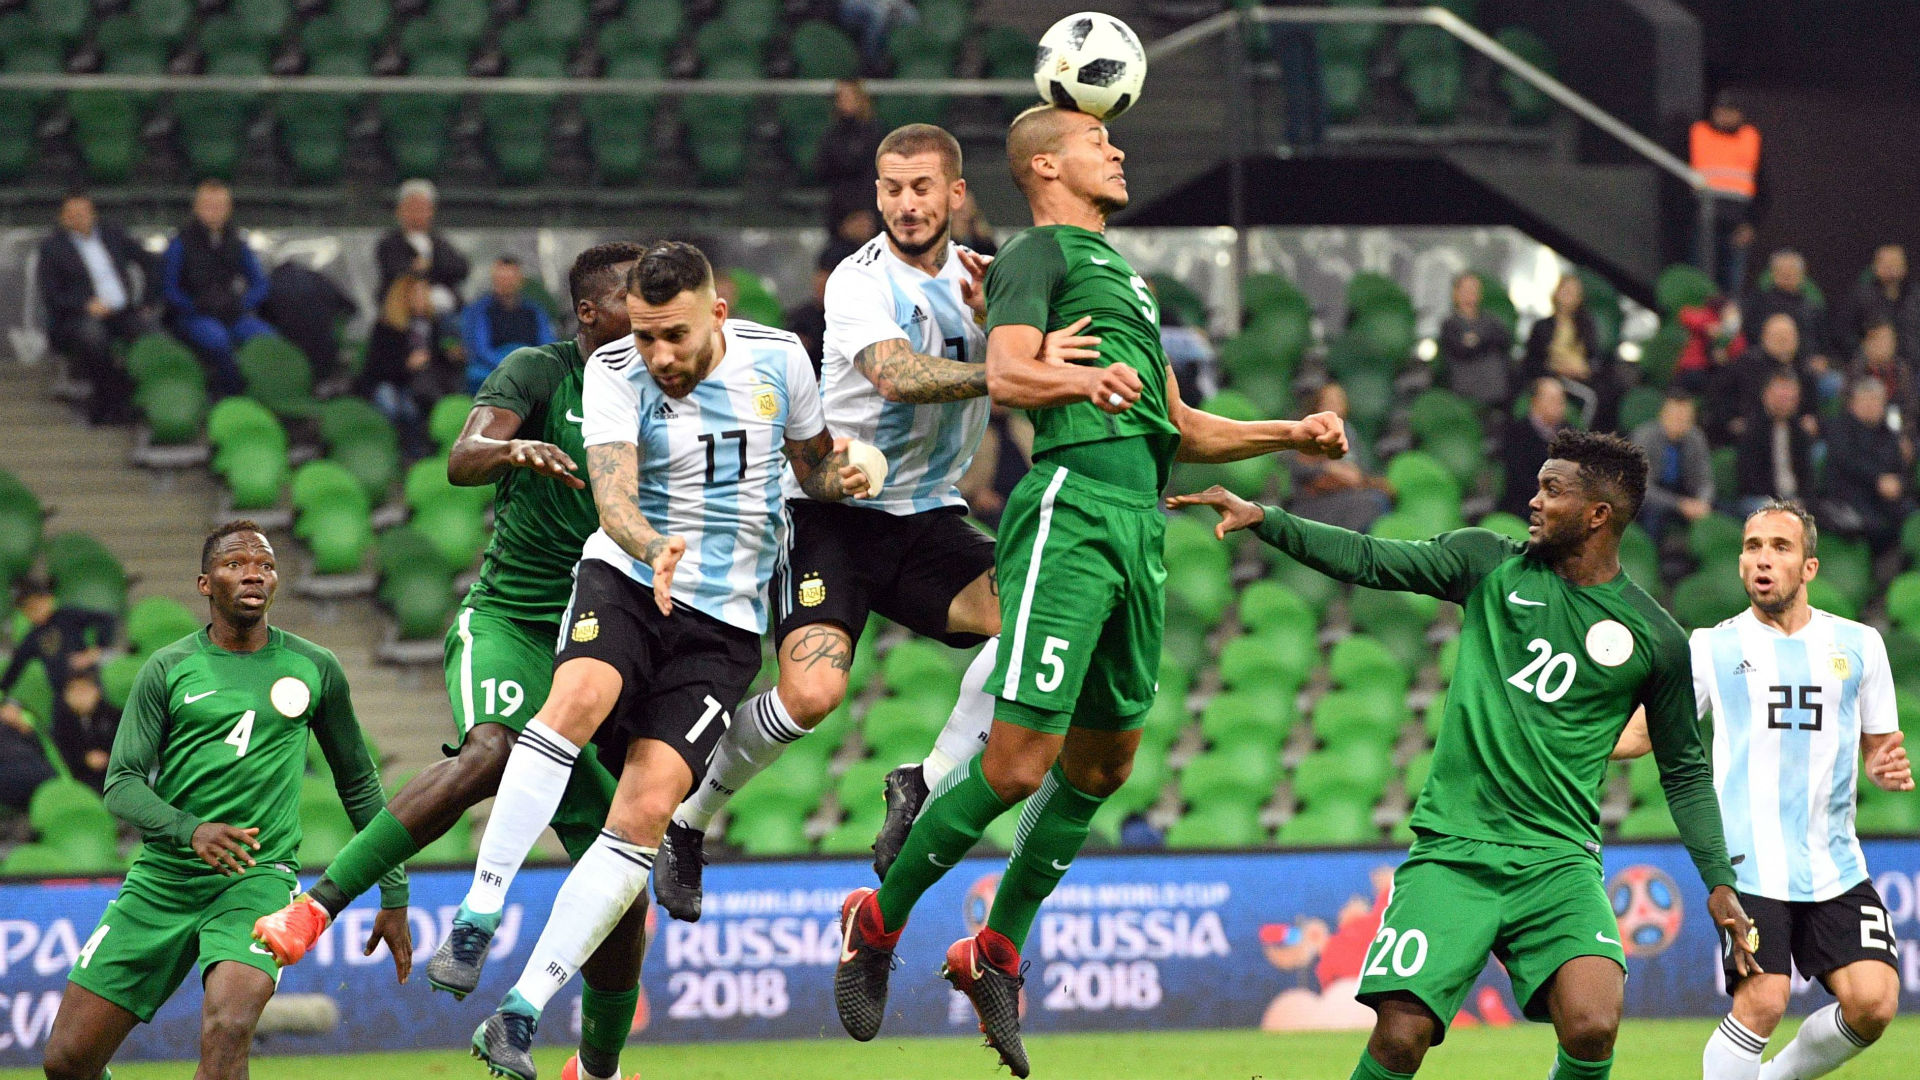 Nigeria Match The Most Difficult For Croatia Slaven